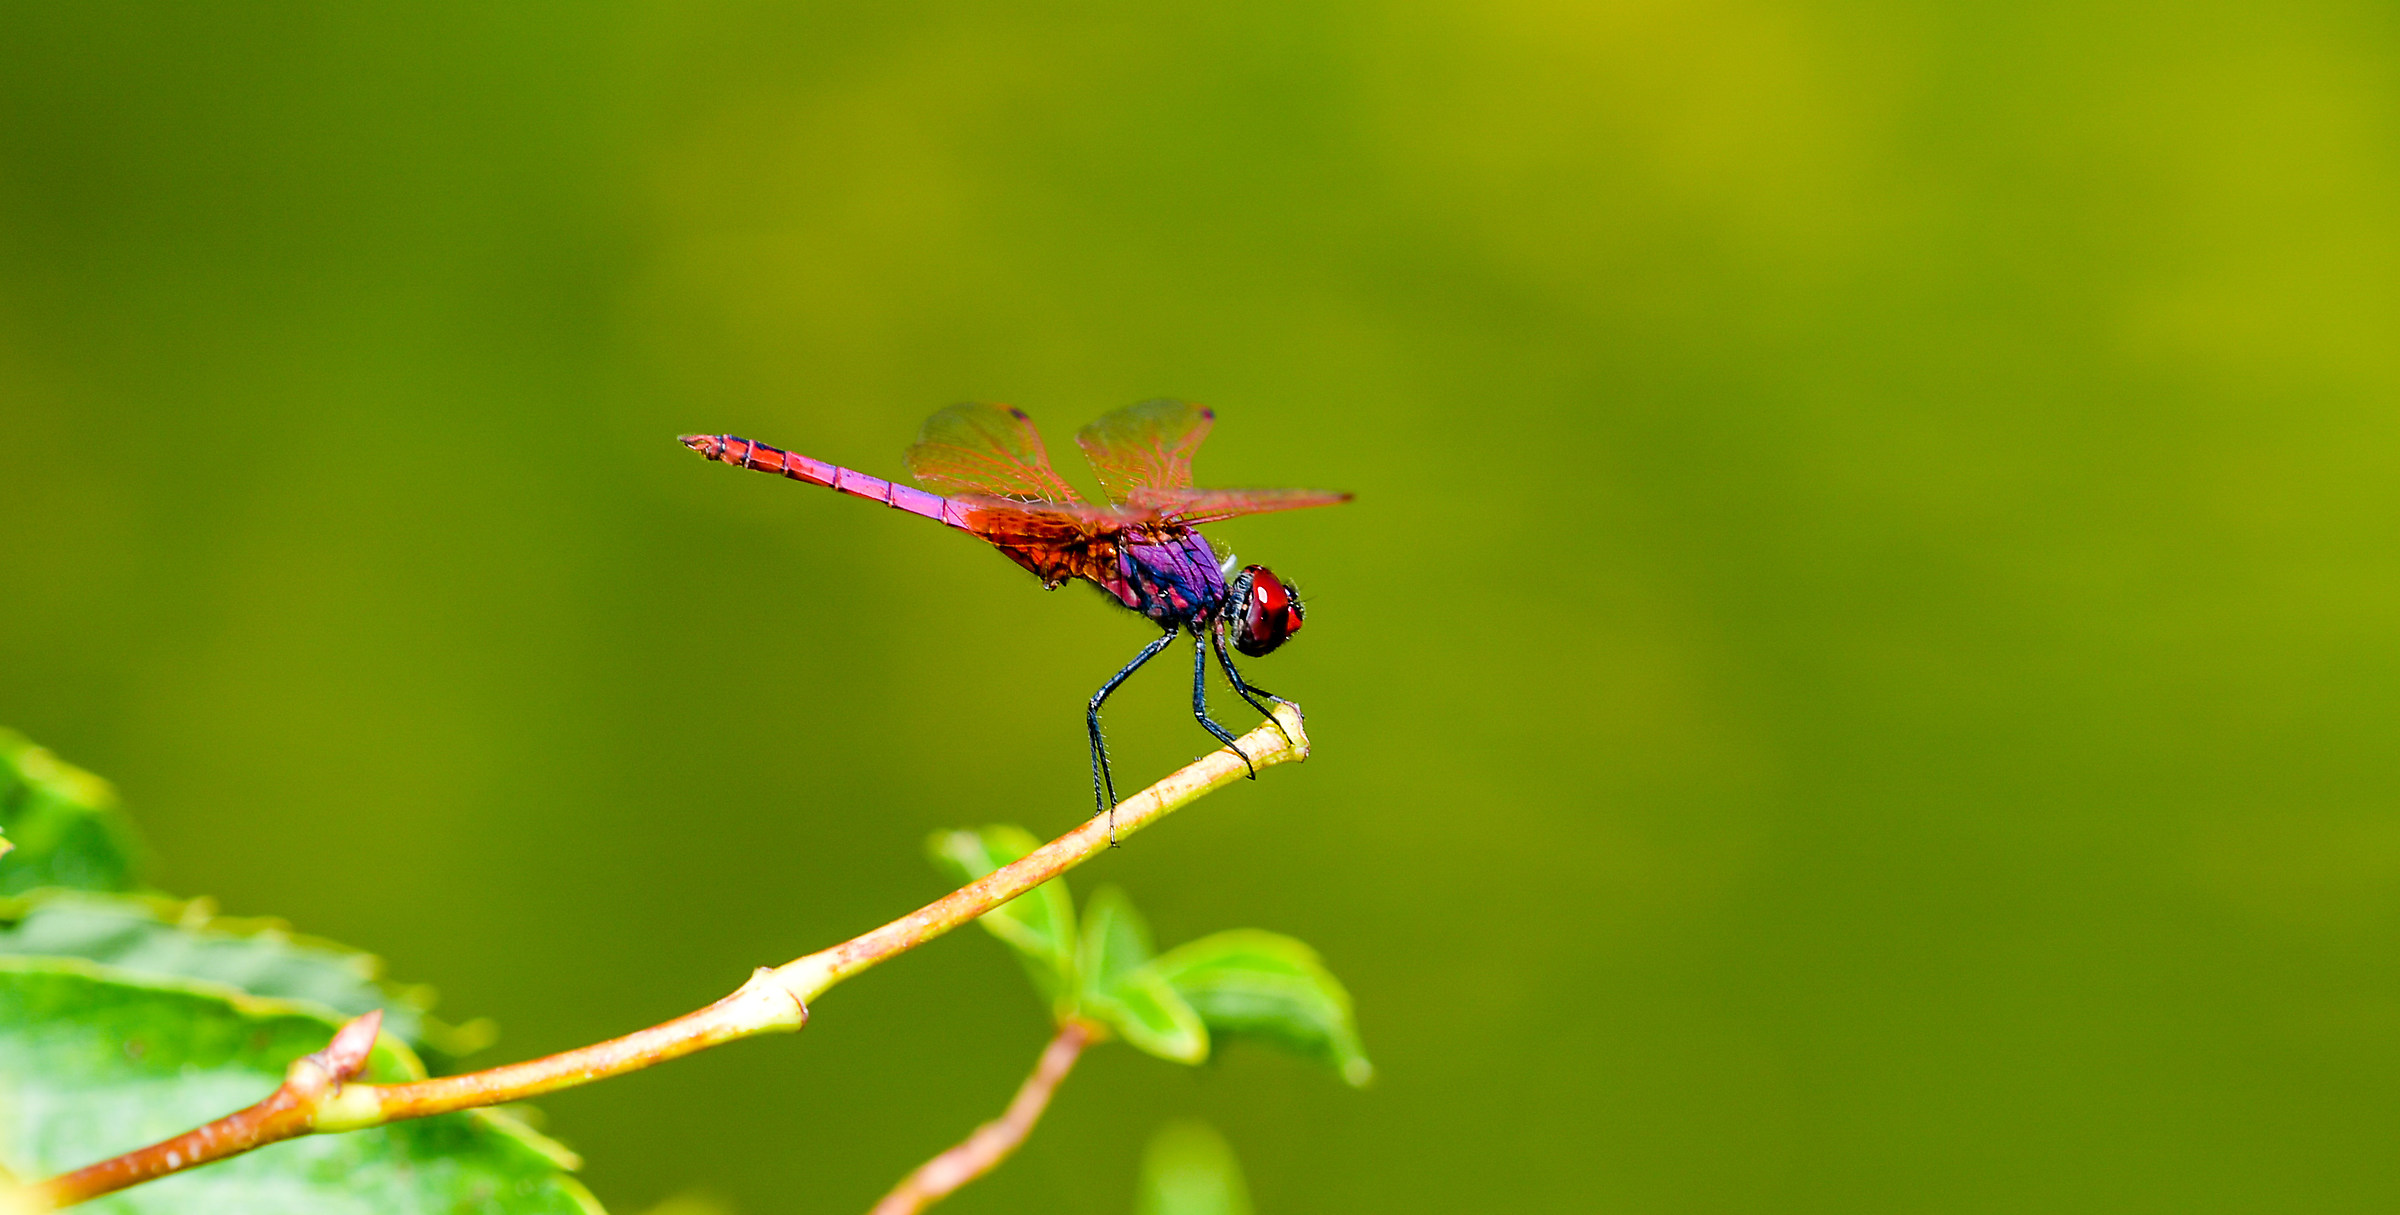 The dragonfly landing...